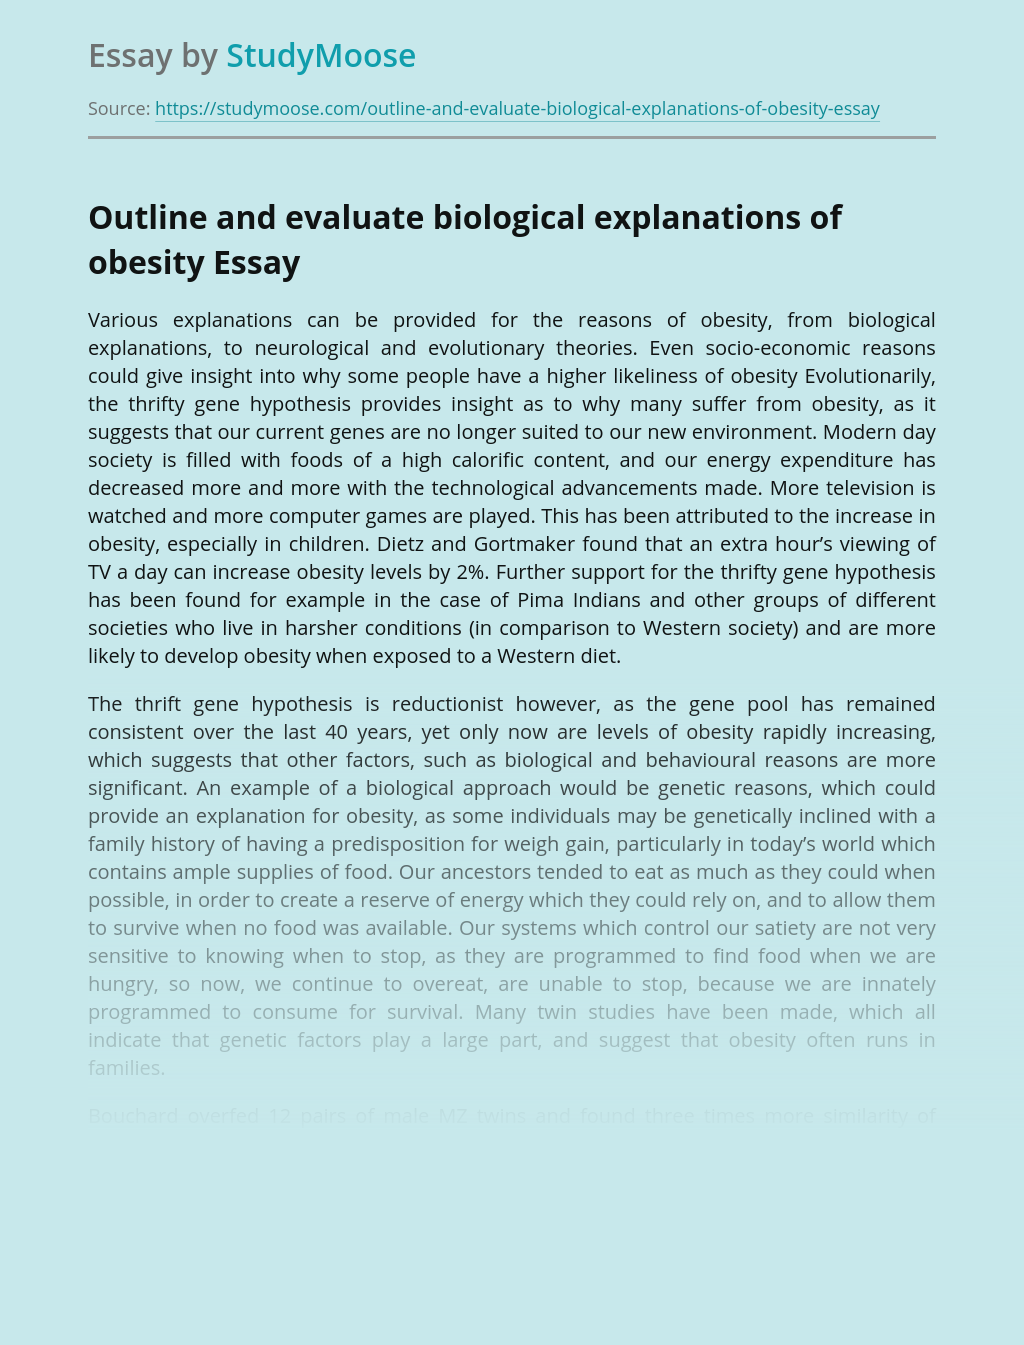 Outlining and evaluating biological explanations of obesity